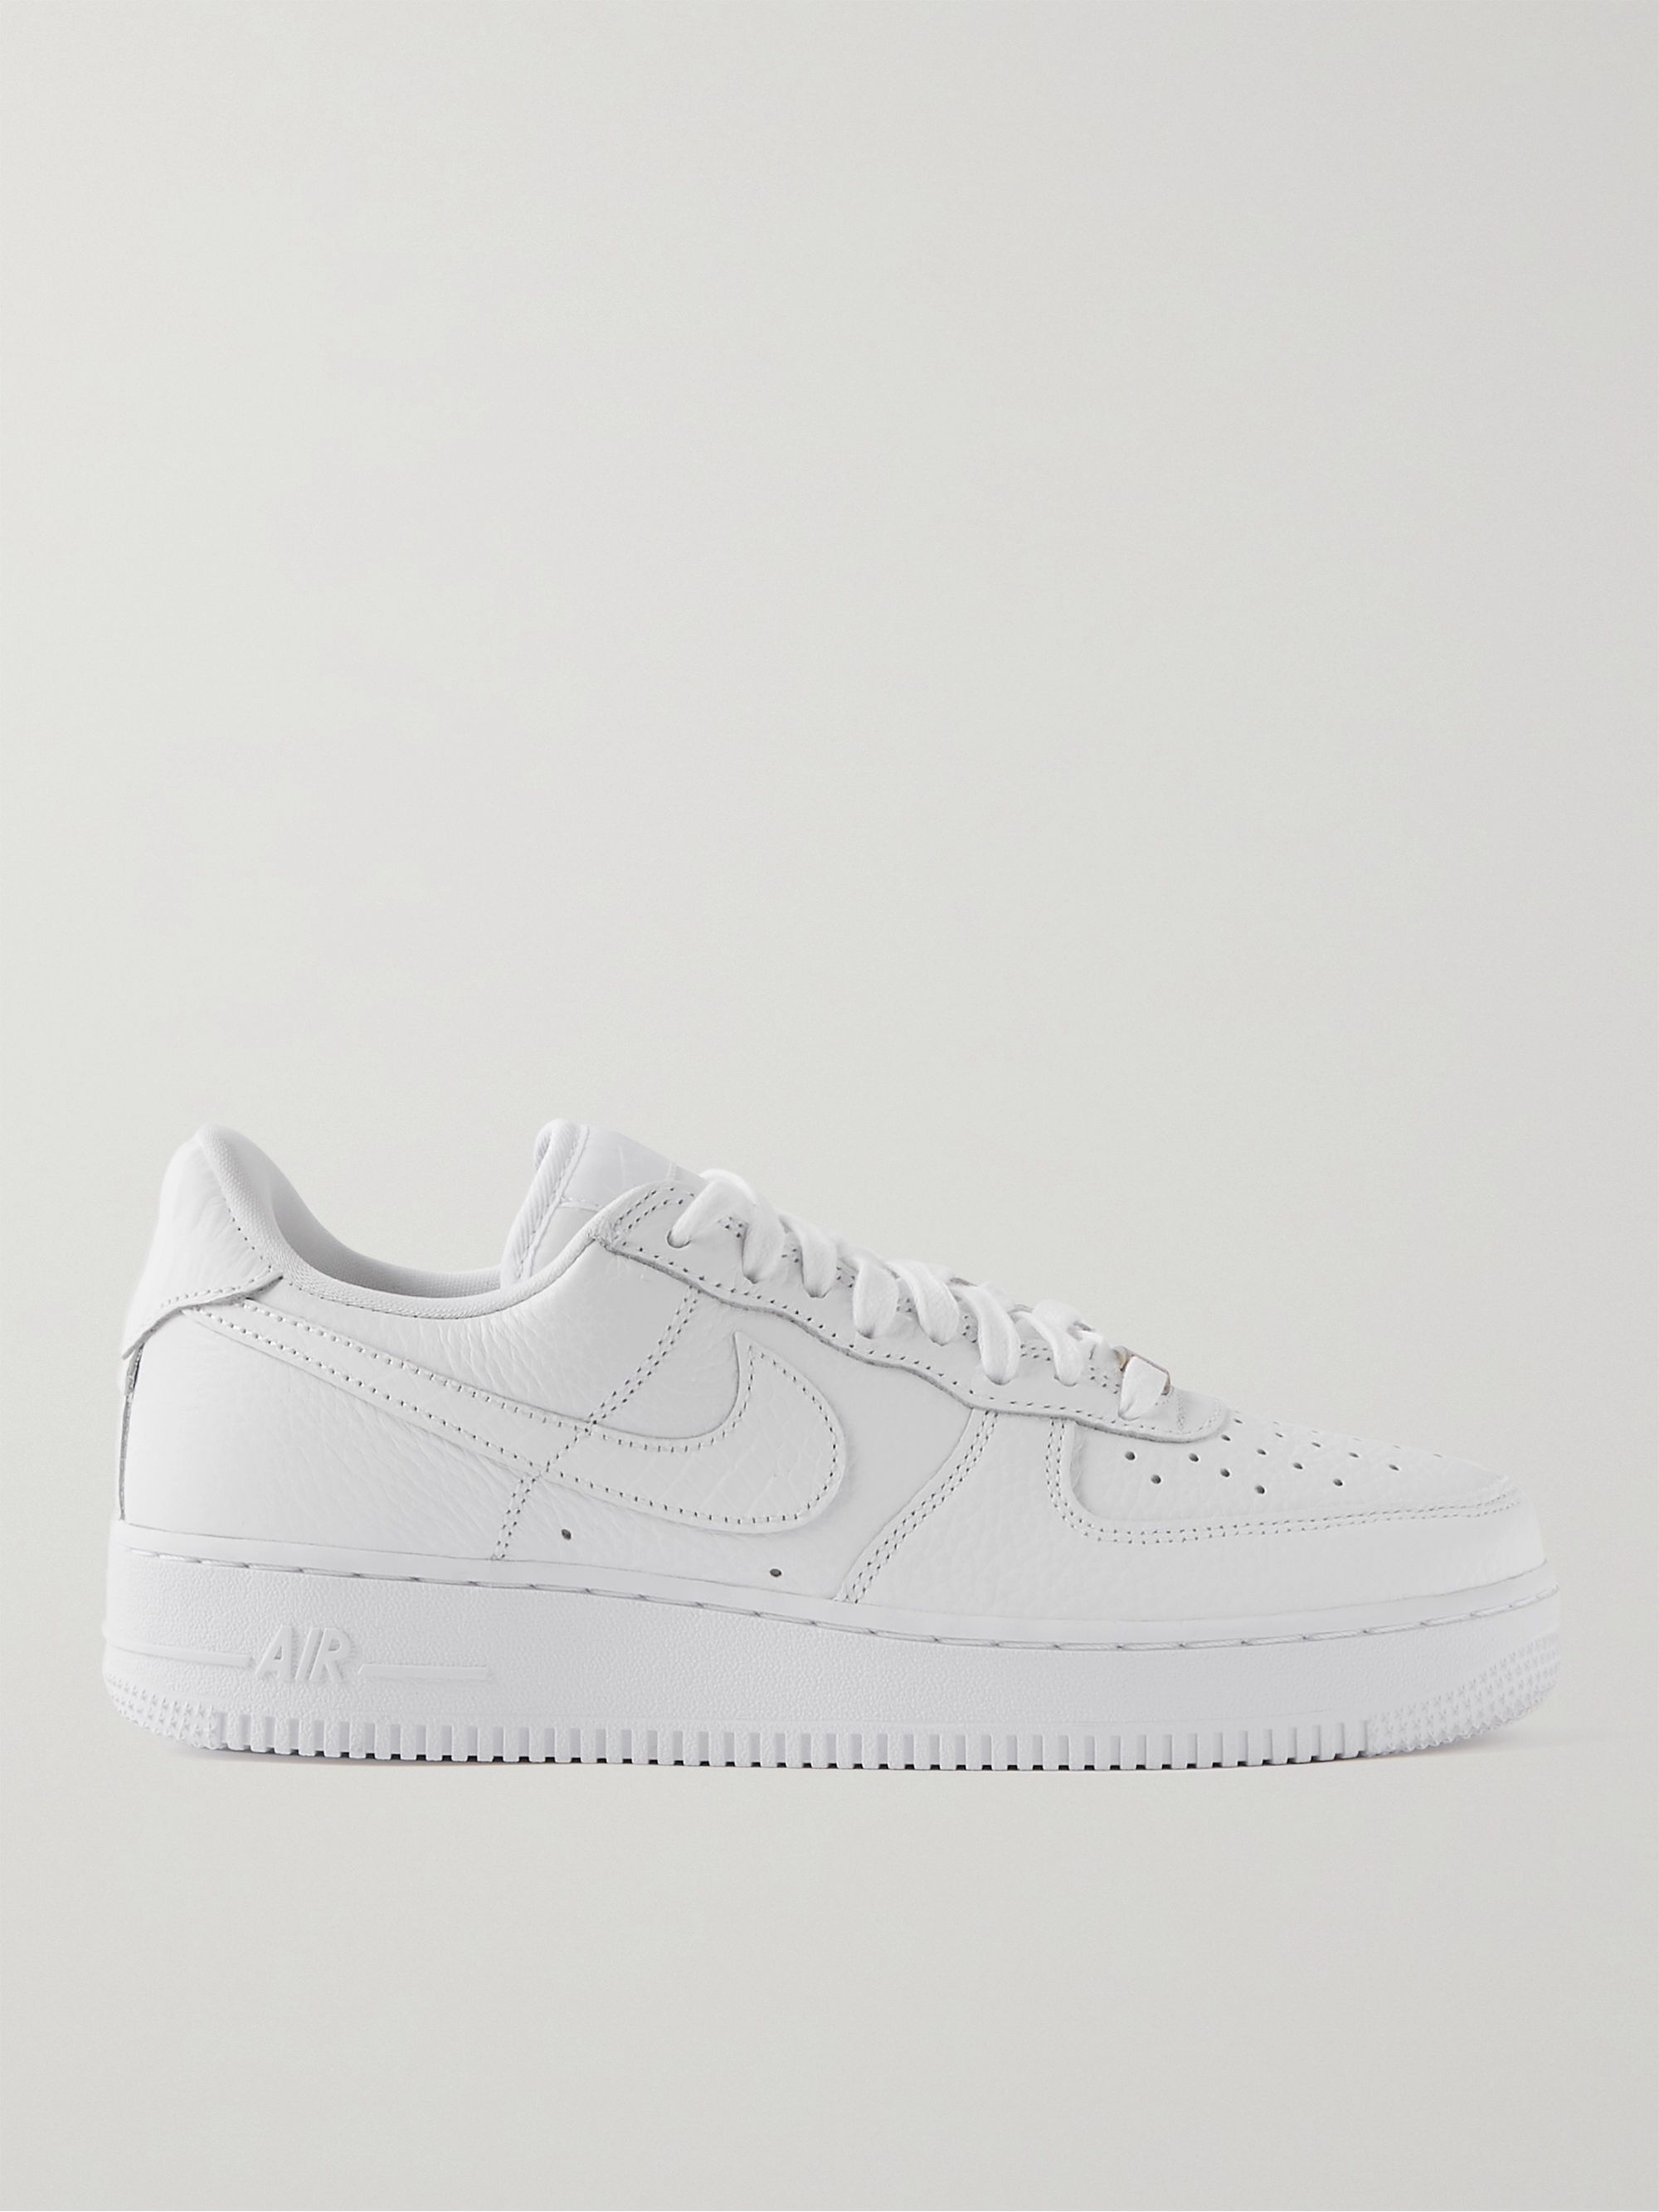 Air Force 1 07 Craft Full-Grain Leather Sneakers